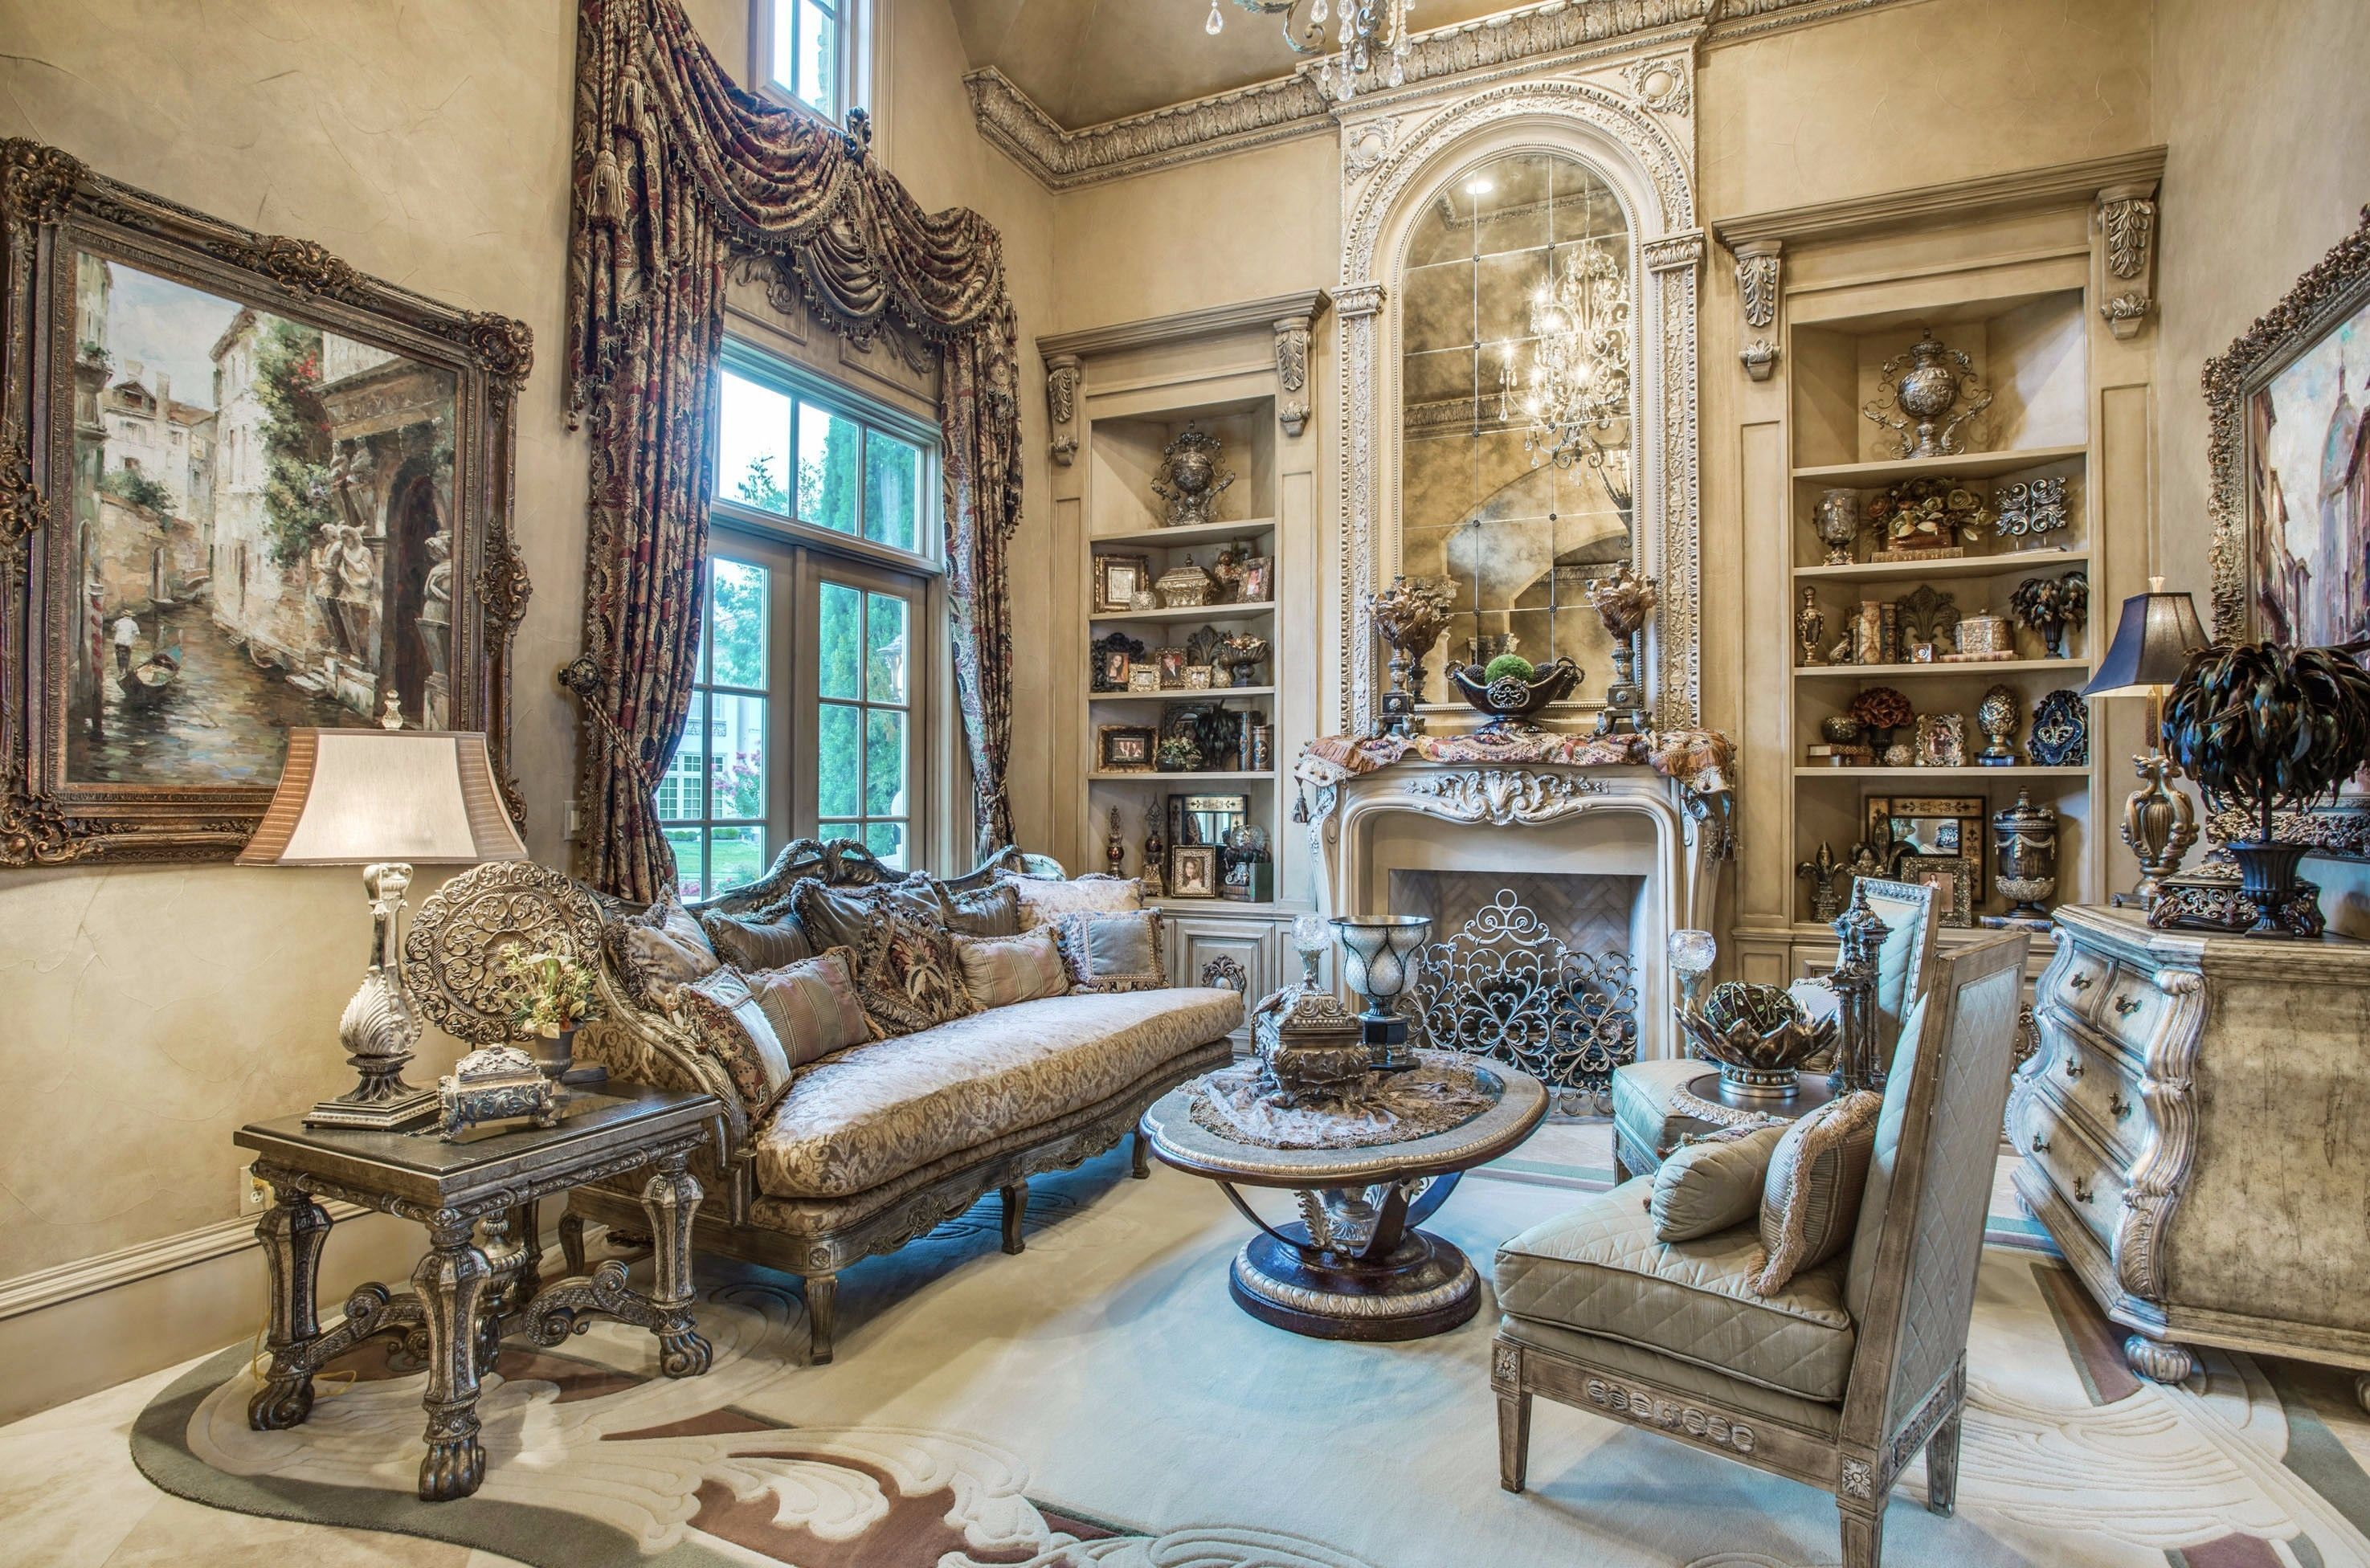 Room Absolutely stunning Absolutely stunning